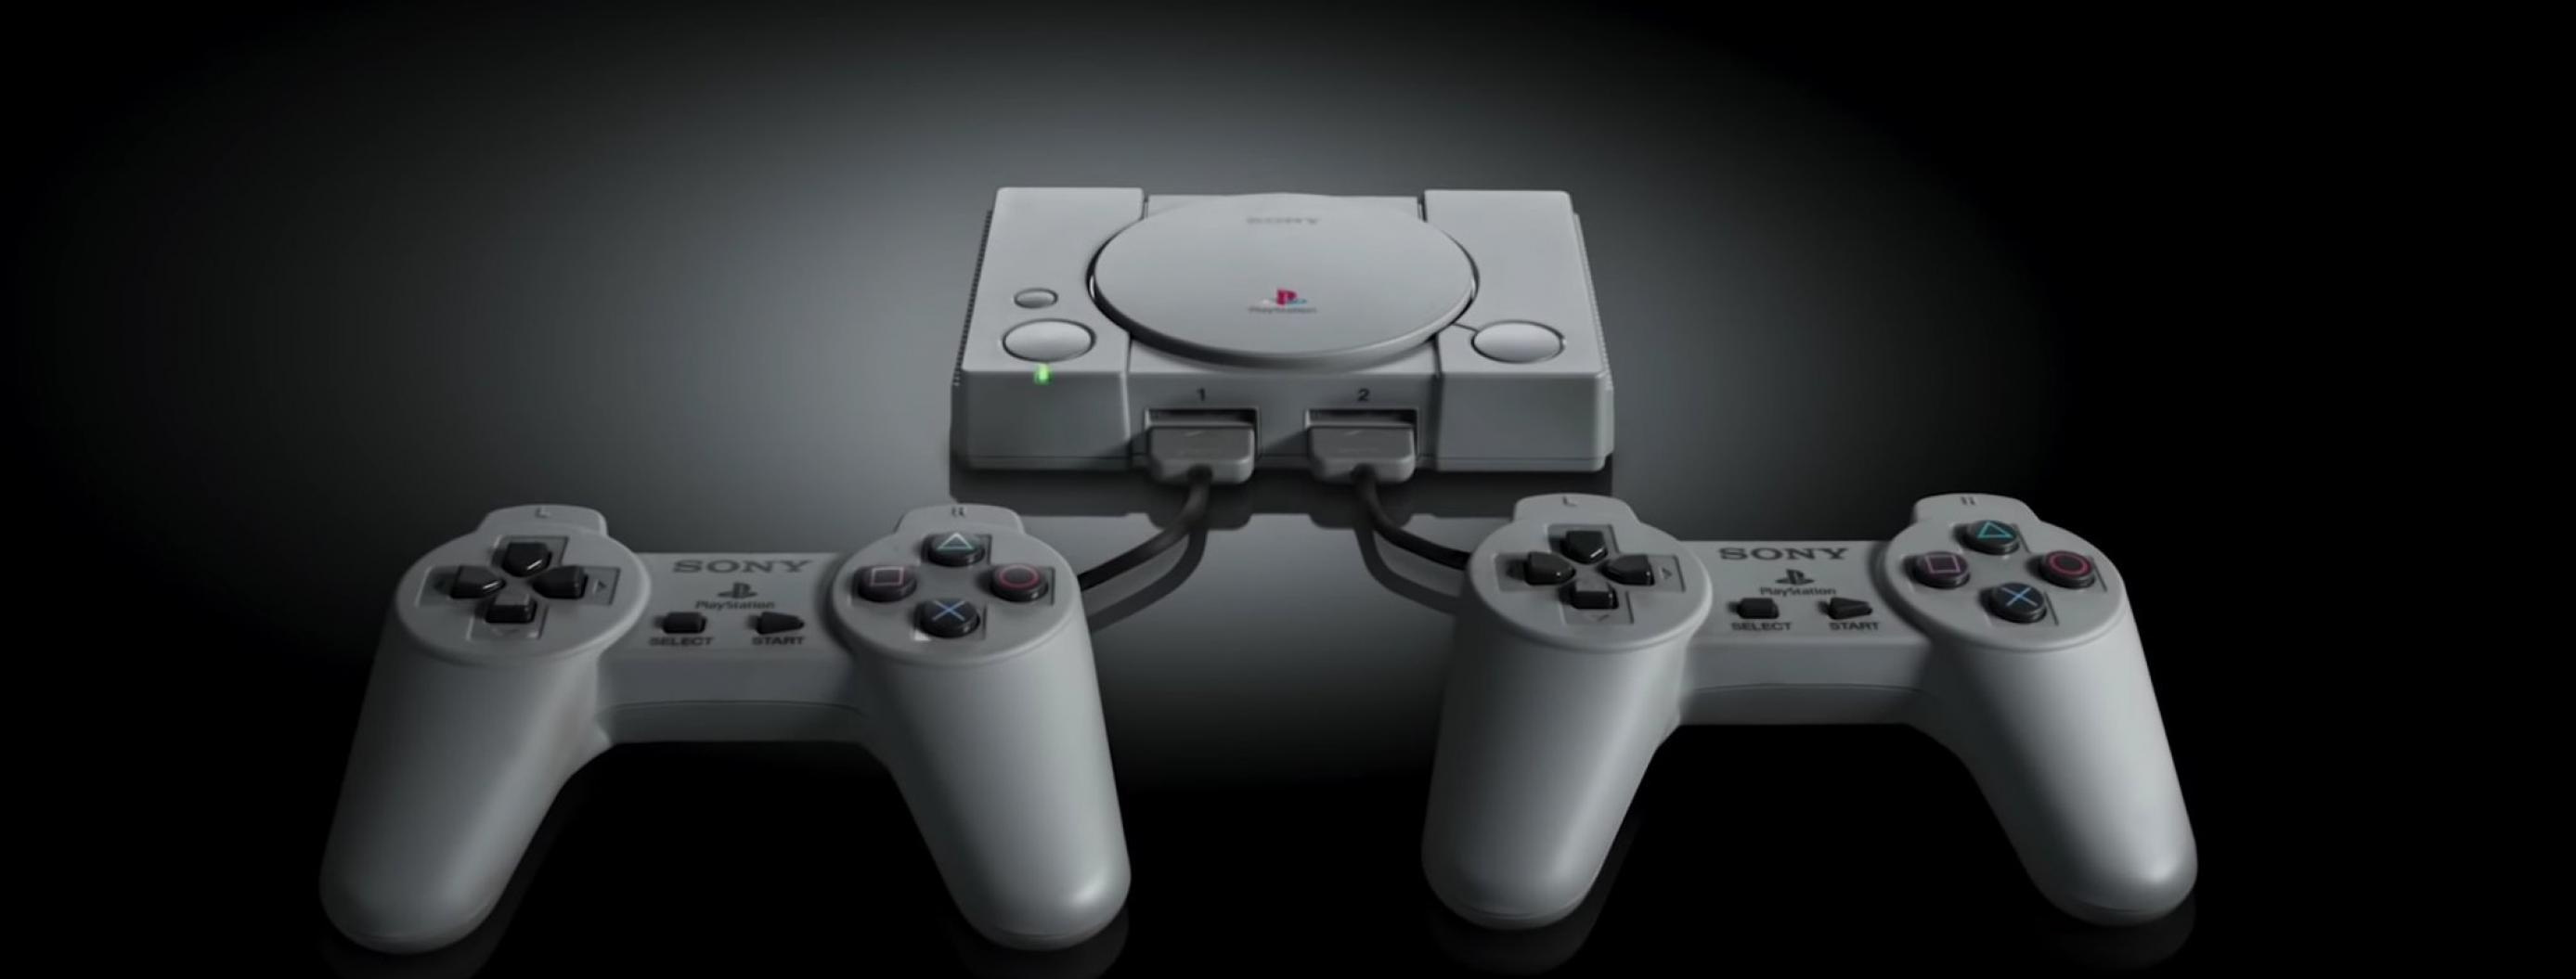 Sony Announces $100 PlayStation Classic